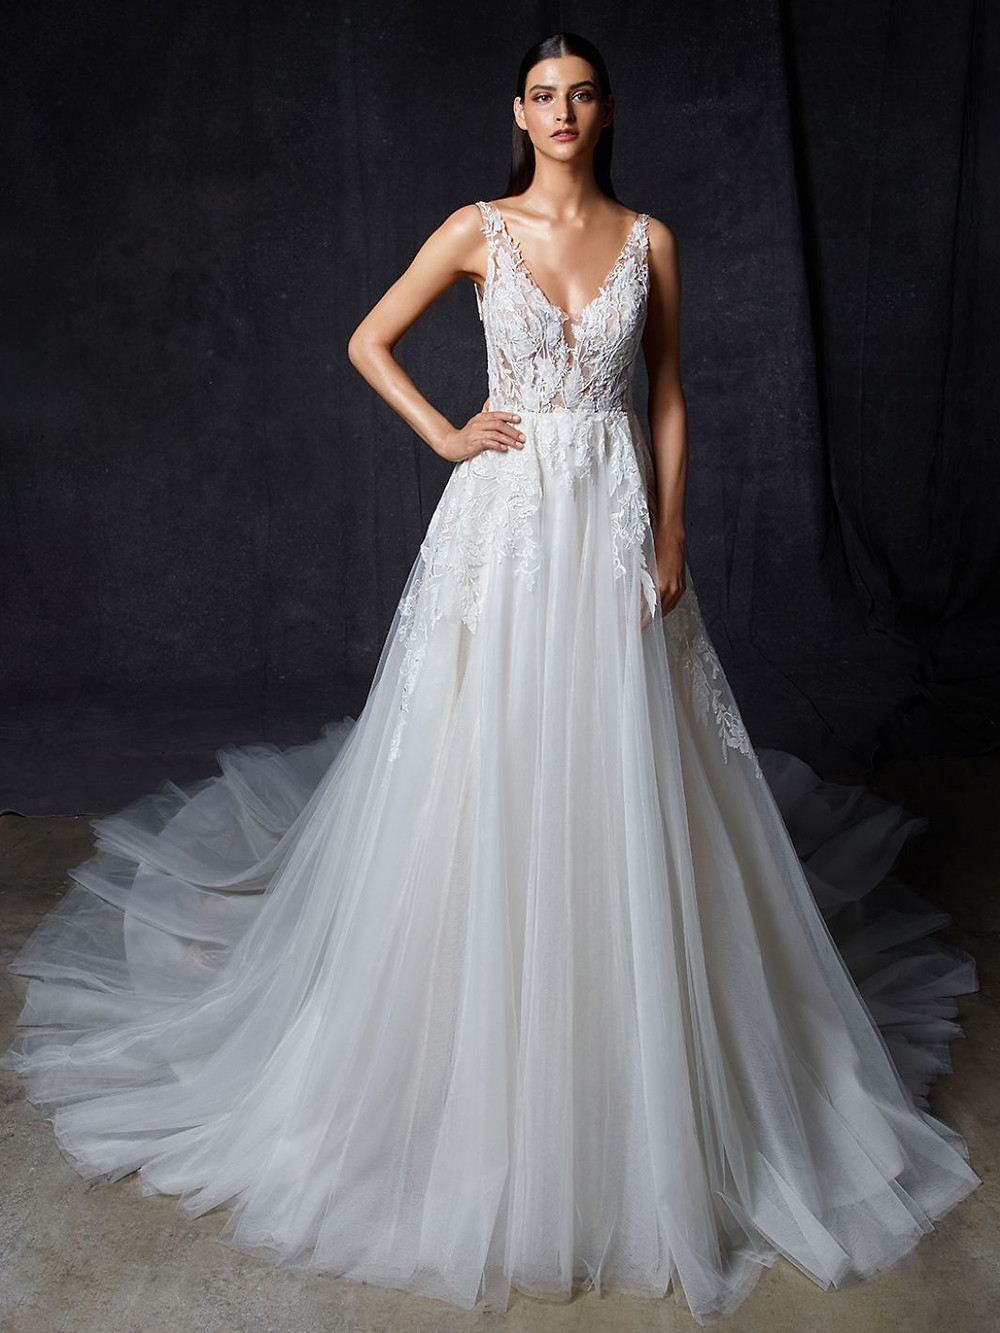 An Enzoani v neck, lace and tulle A-line wedding dress with straps